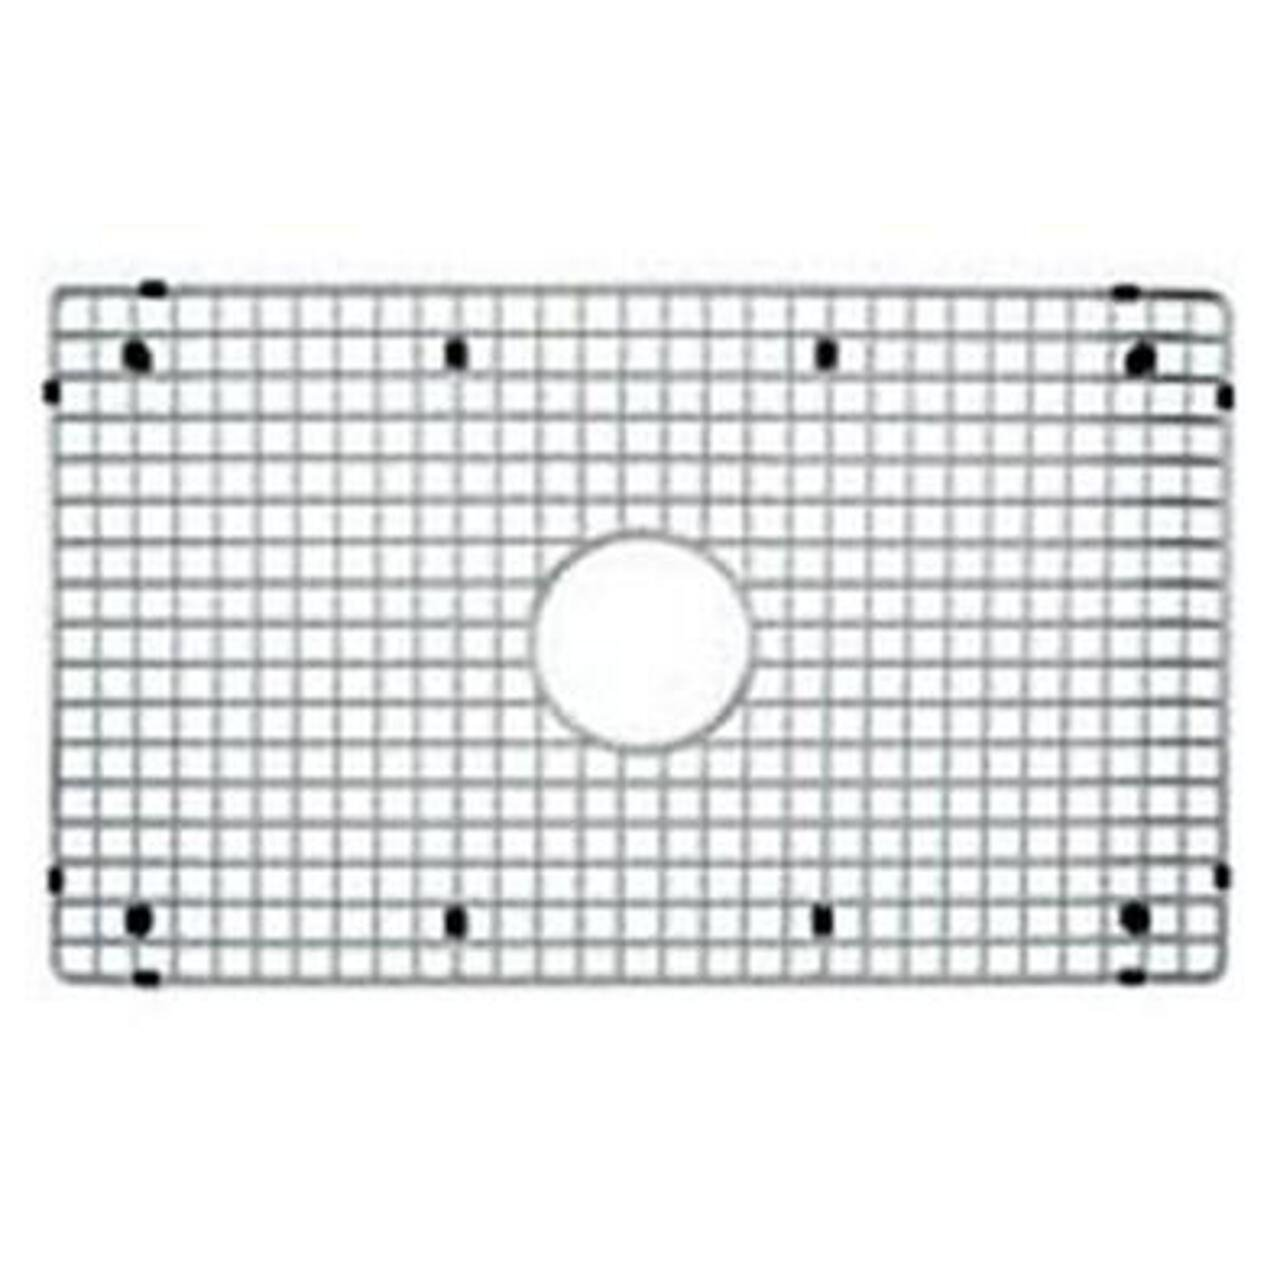 Lovely Blanco 229560 Stainless Steel Sink Grid For Cerana 30 Inch Bowl   Sink  Strainers   Amazon.com